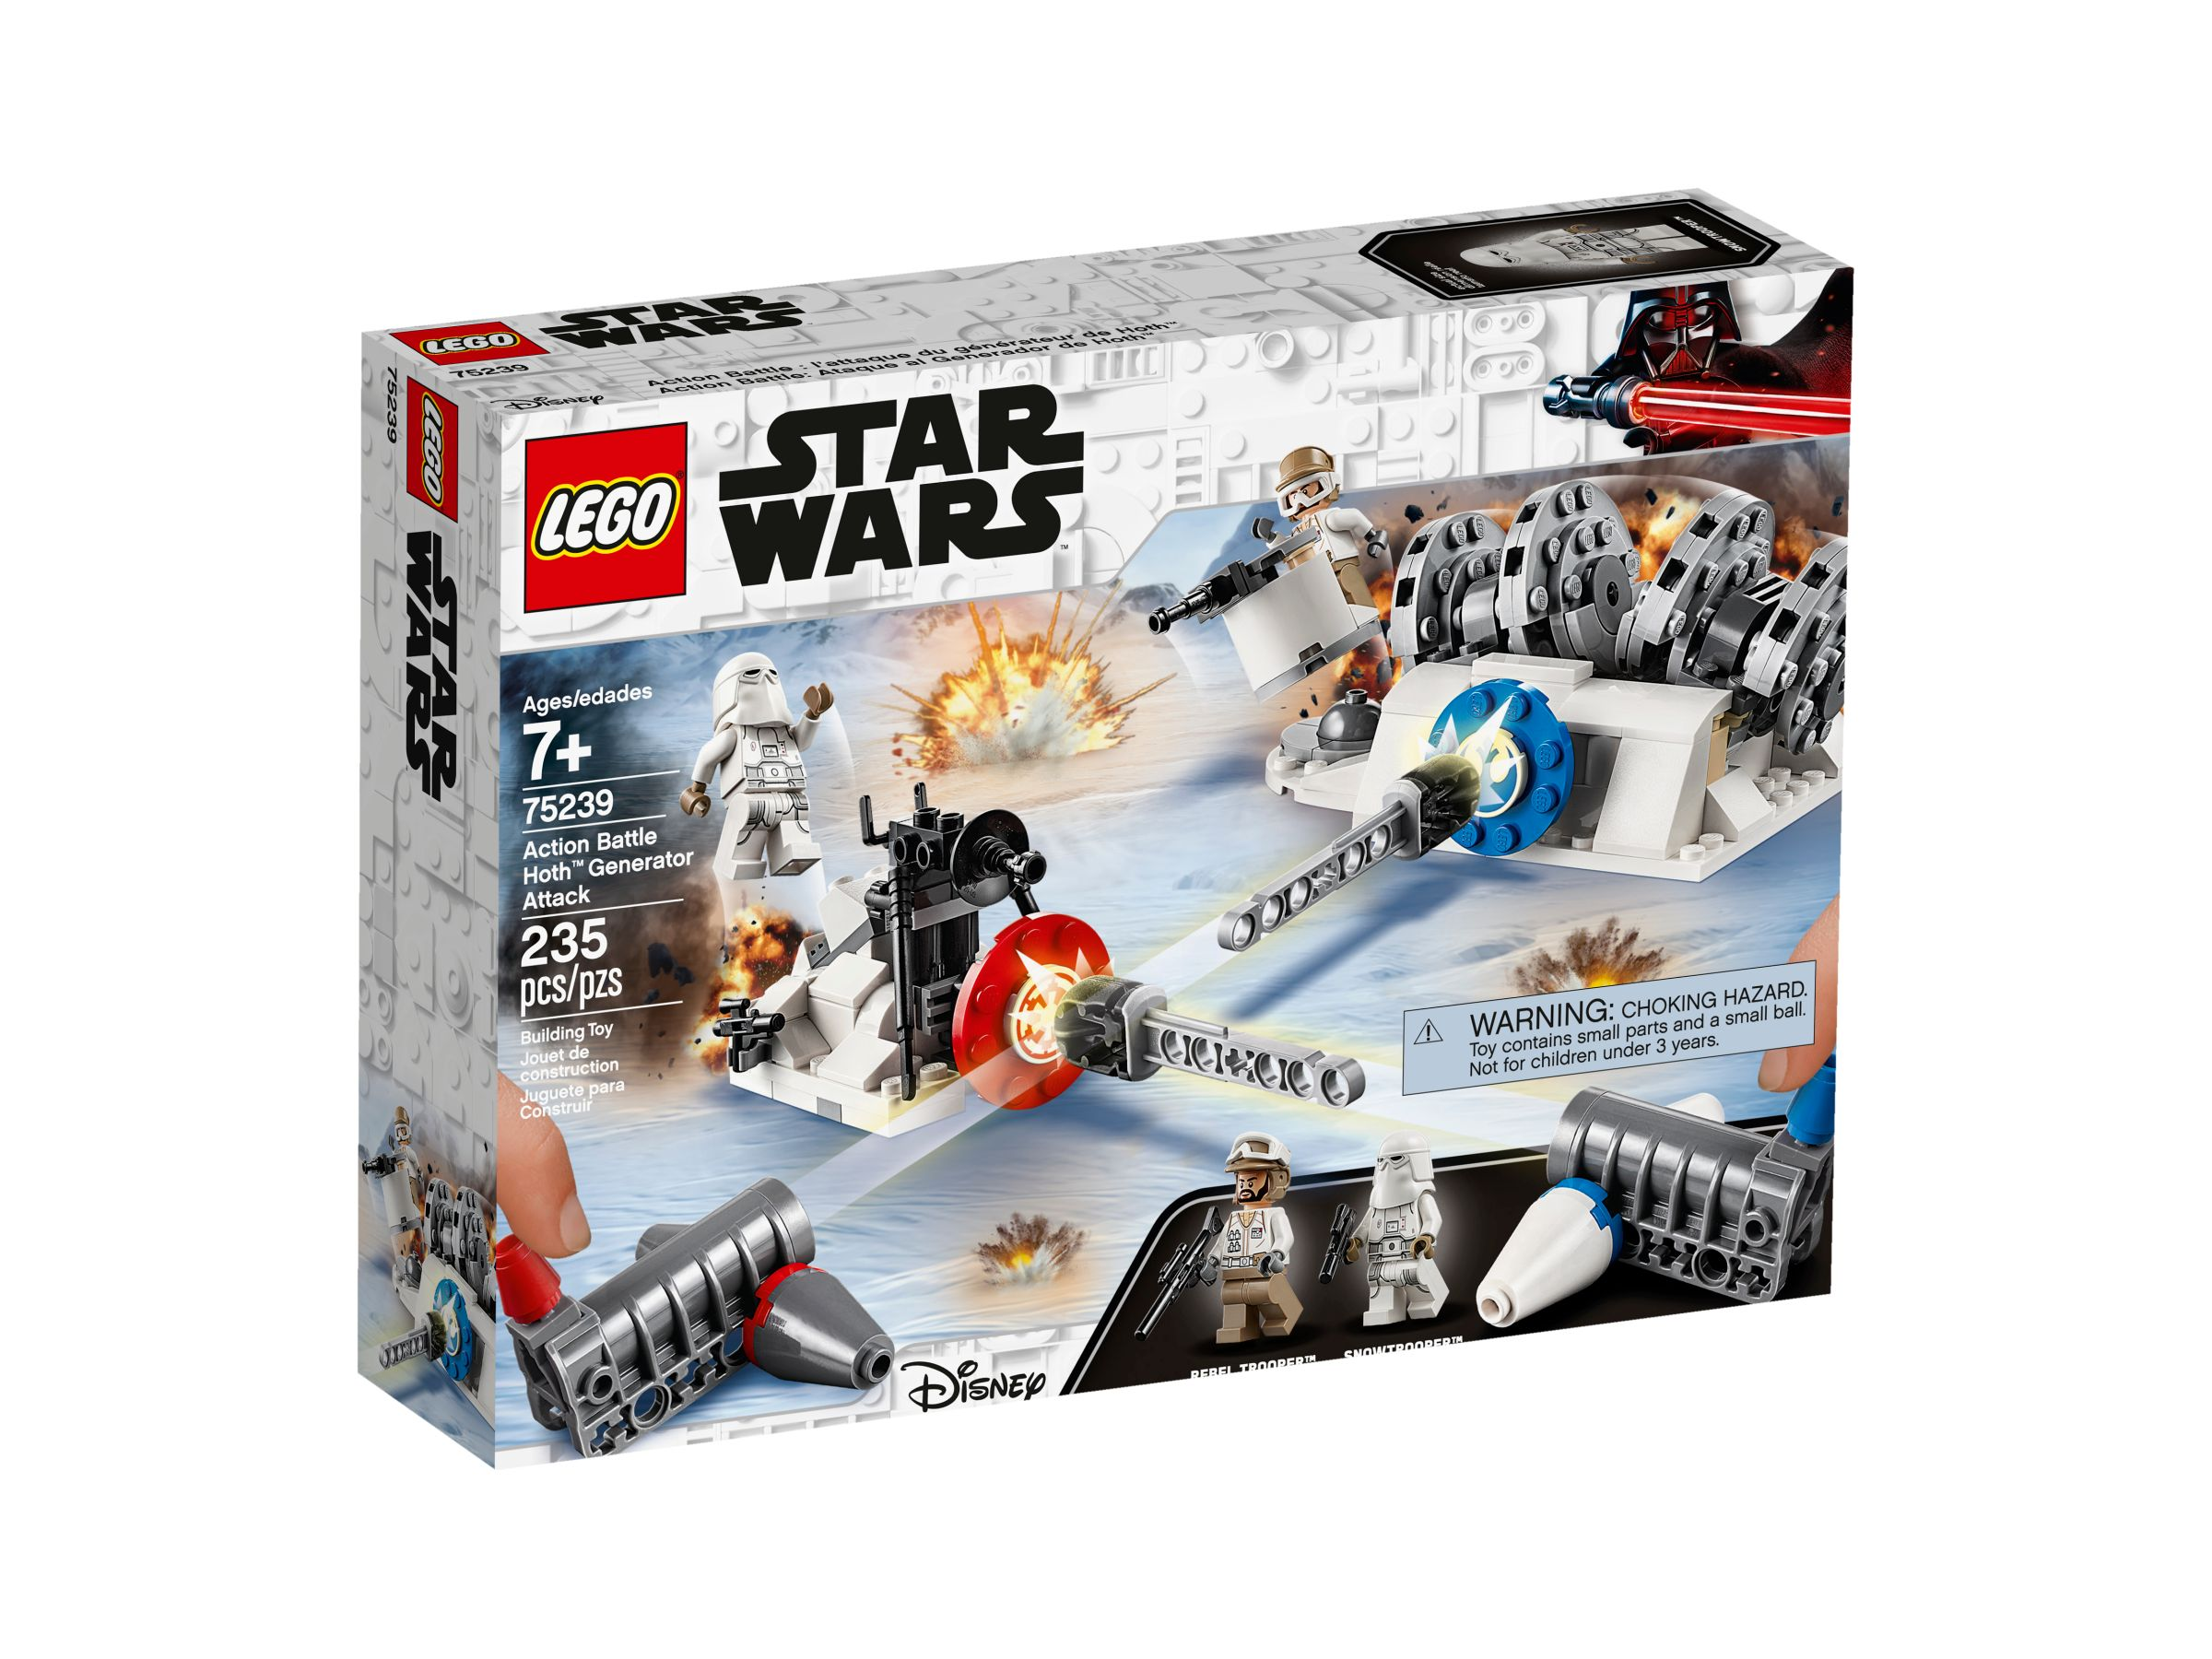 LEGO Star Wars 75239 Action Battle Hoth™ Generator-Attacke LEGO_75239_alt1.jpg